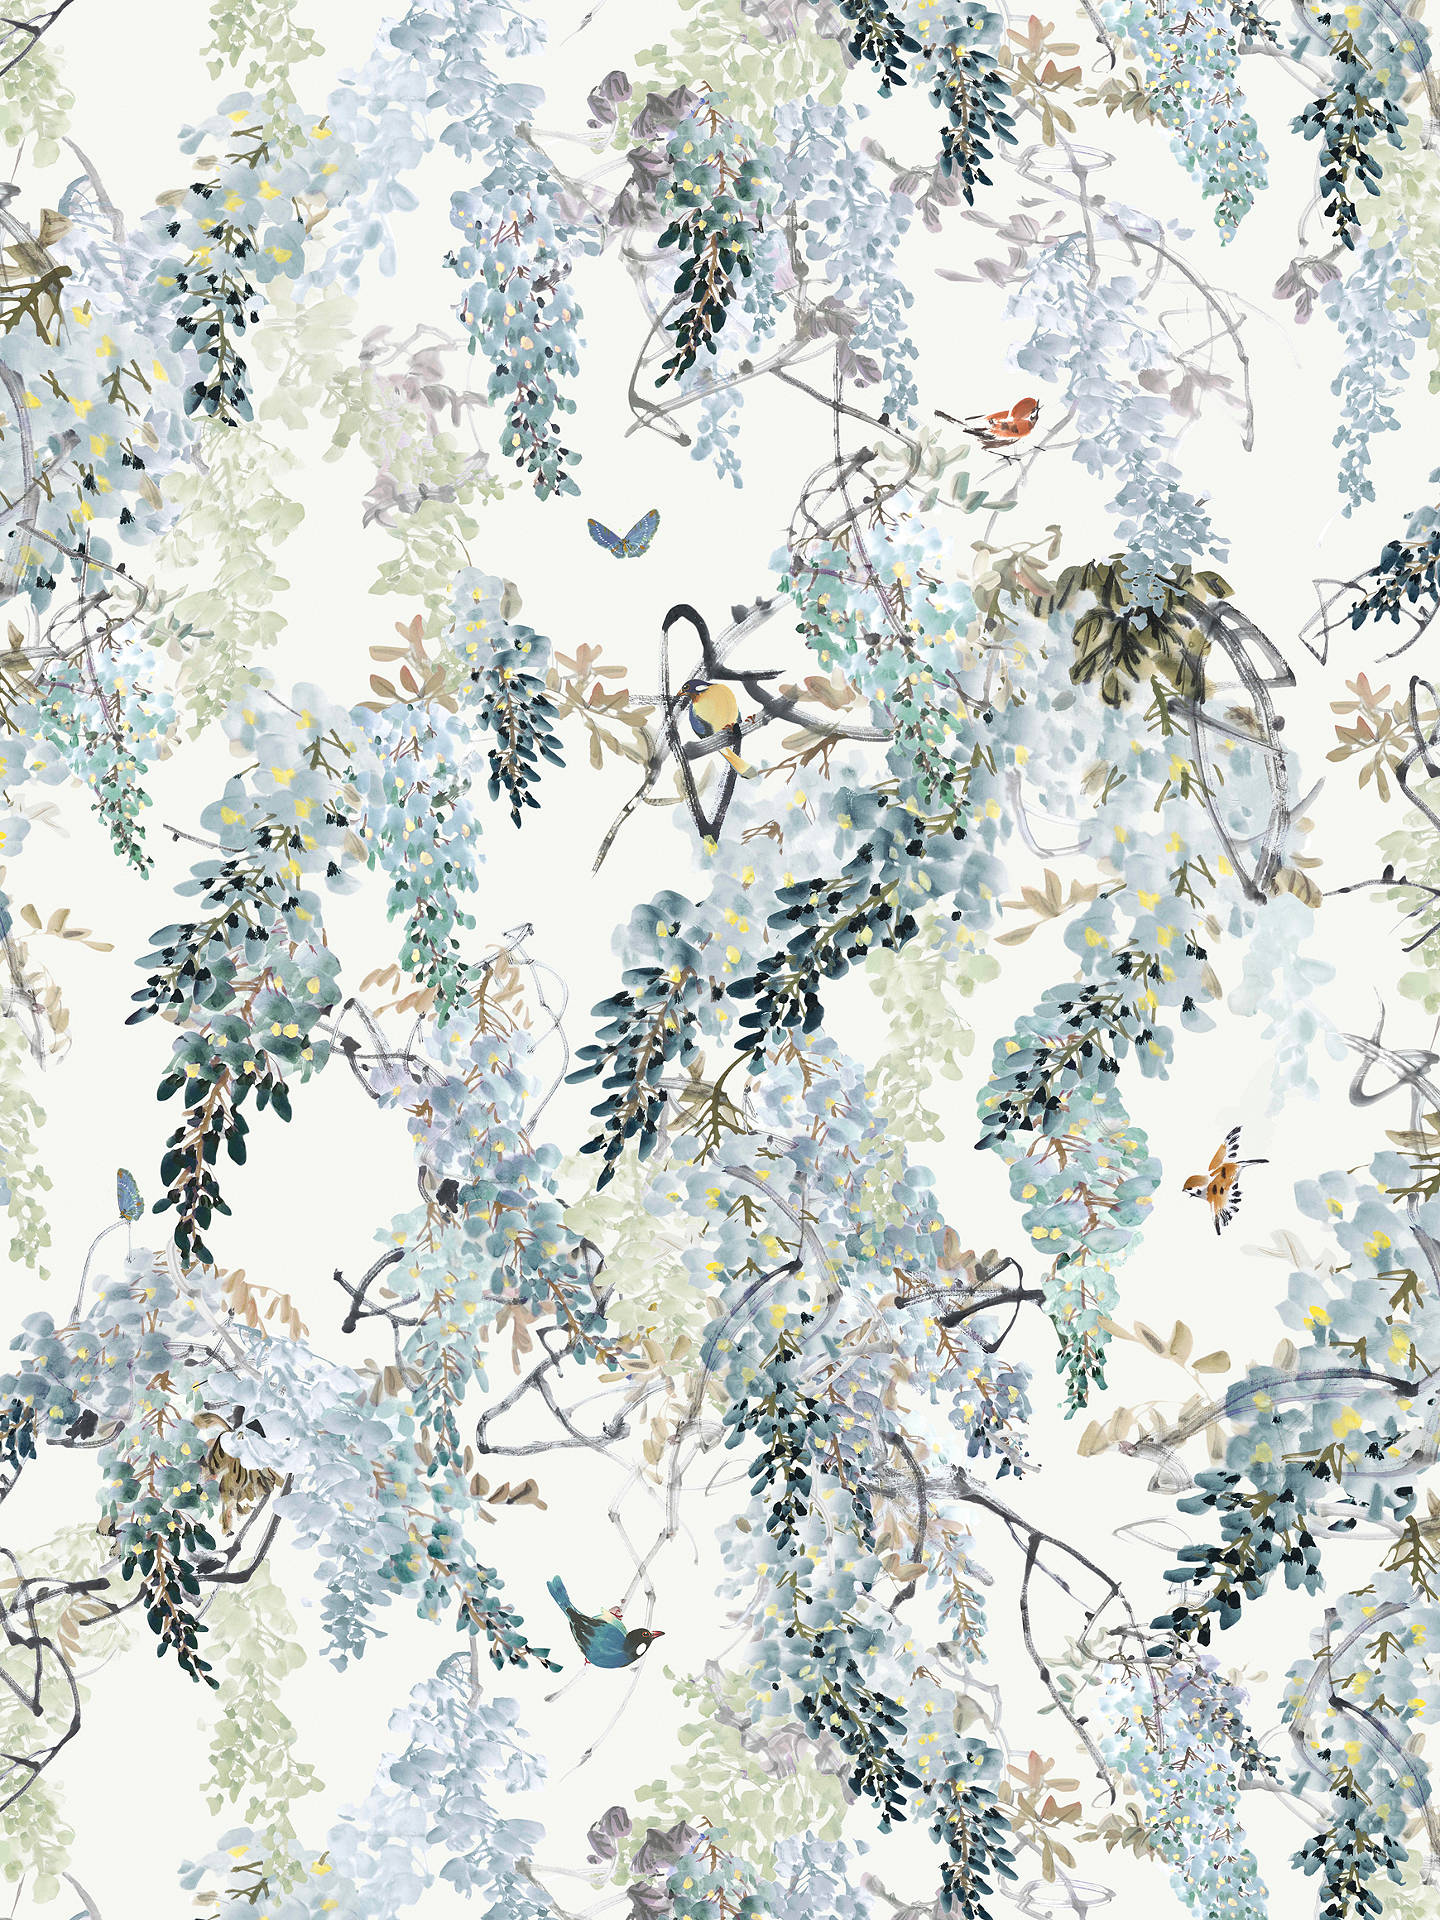 Buy Sanderson Waterperry Wisteria Falls Wallpaper Aqua 216298, Panel A Online at johnlewis.com